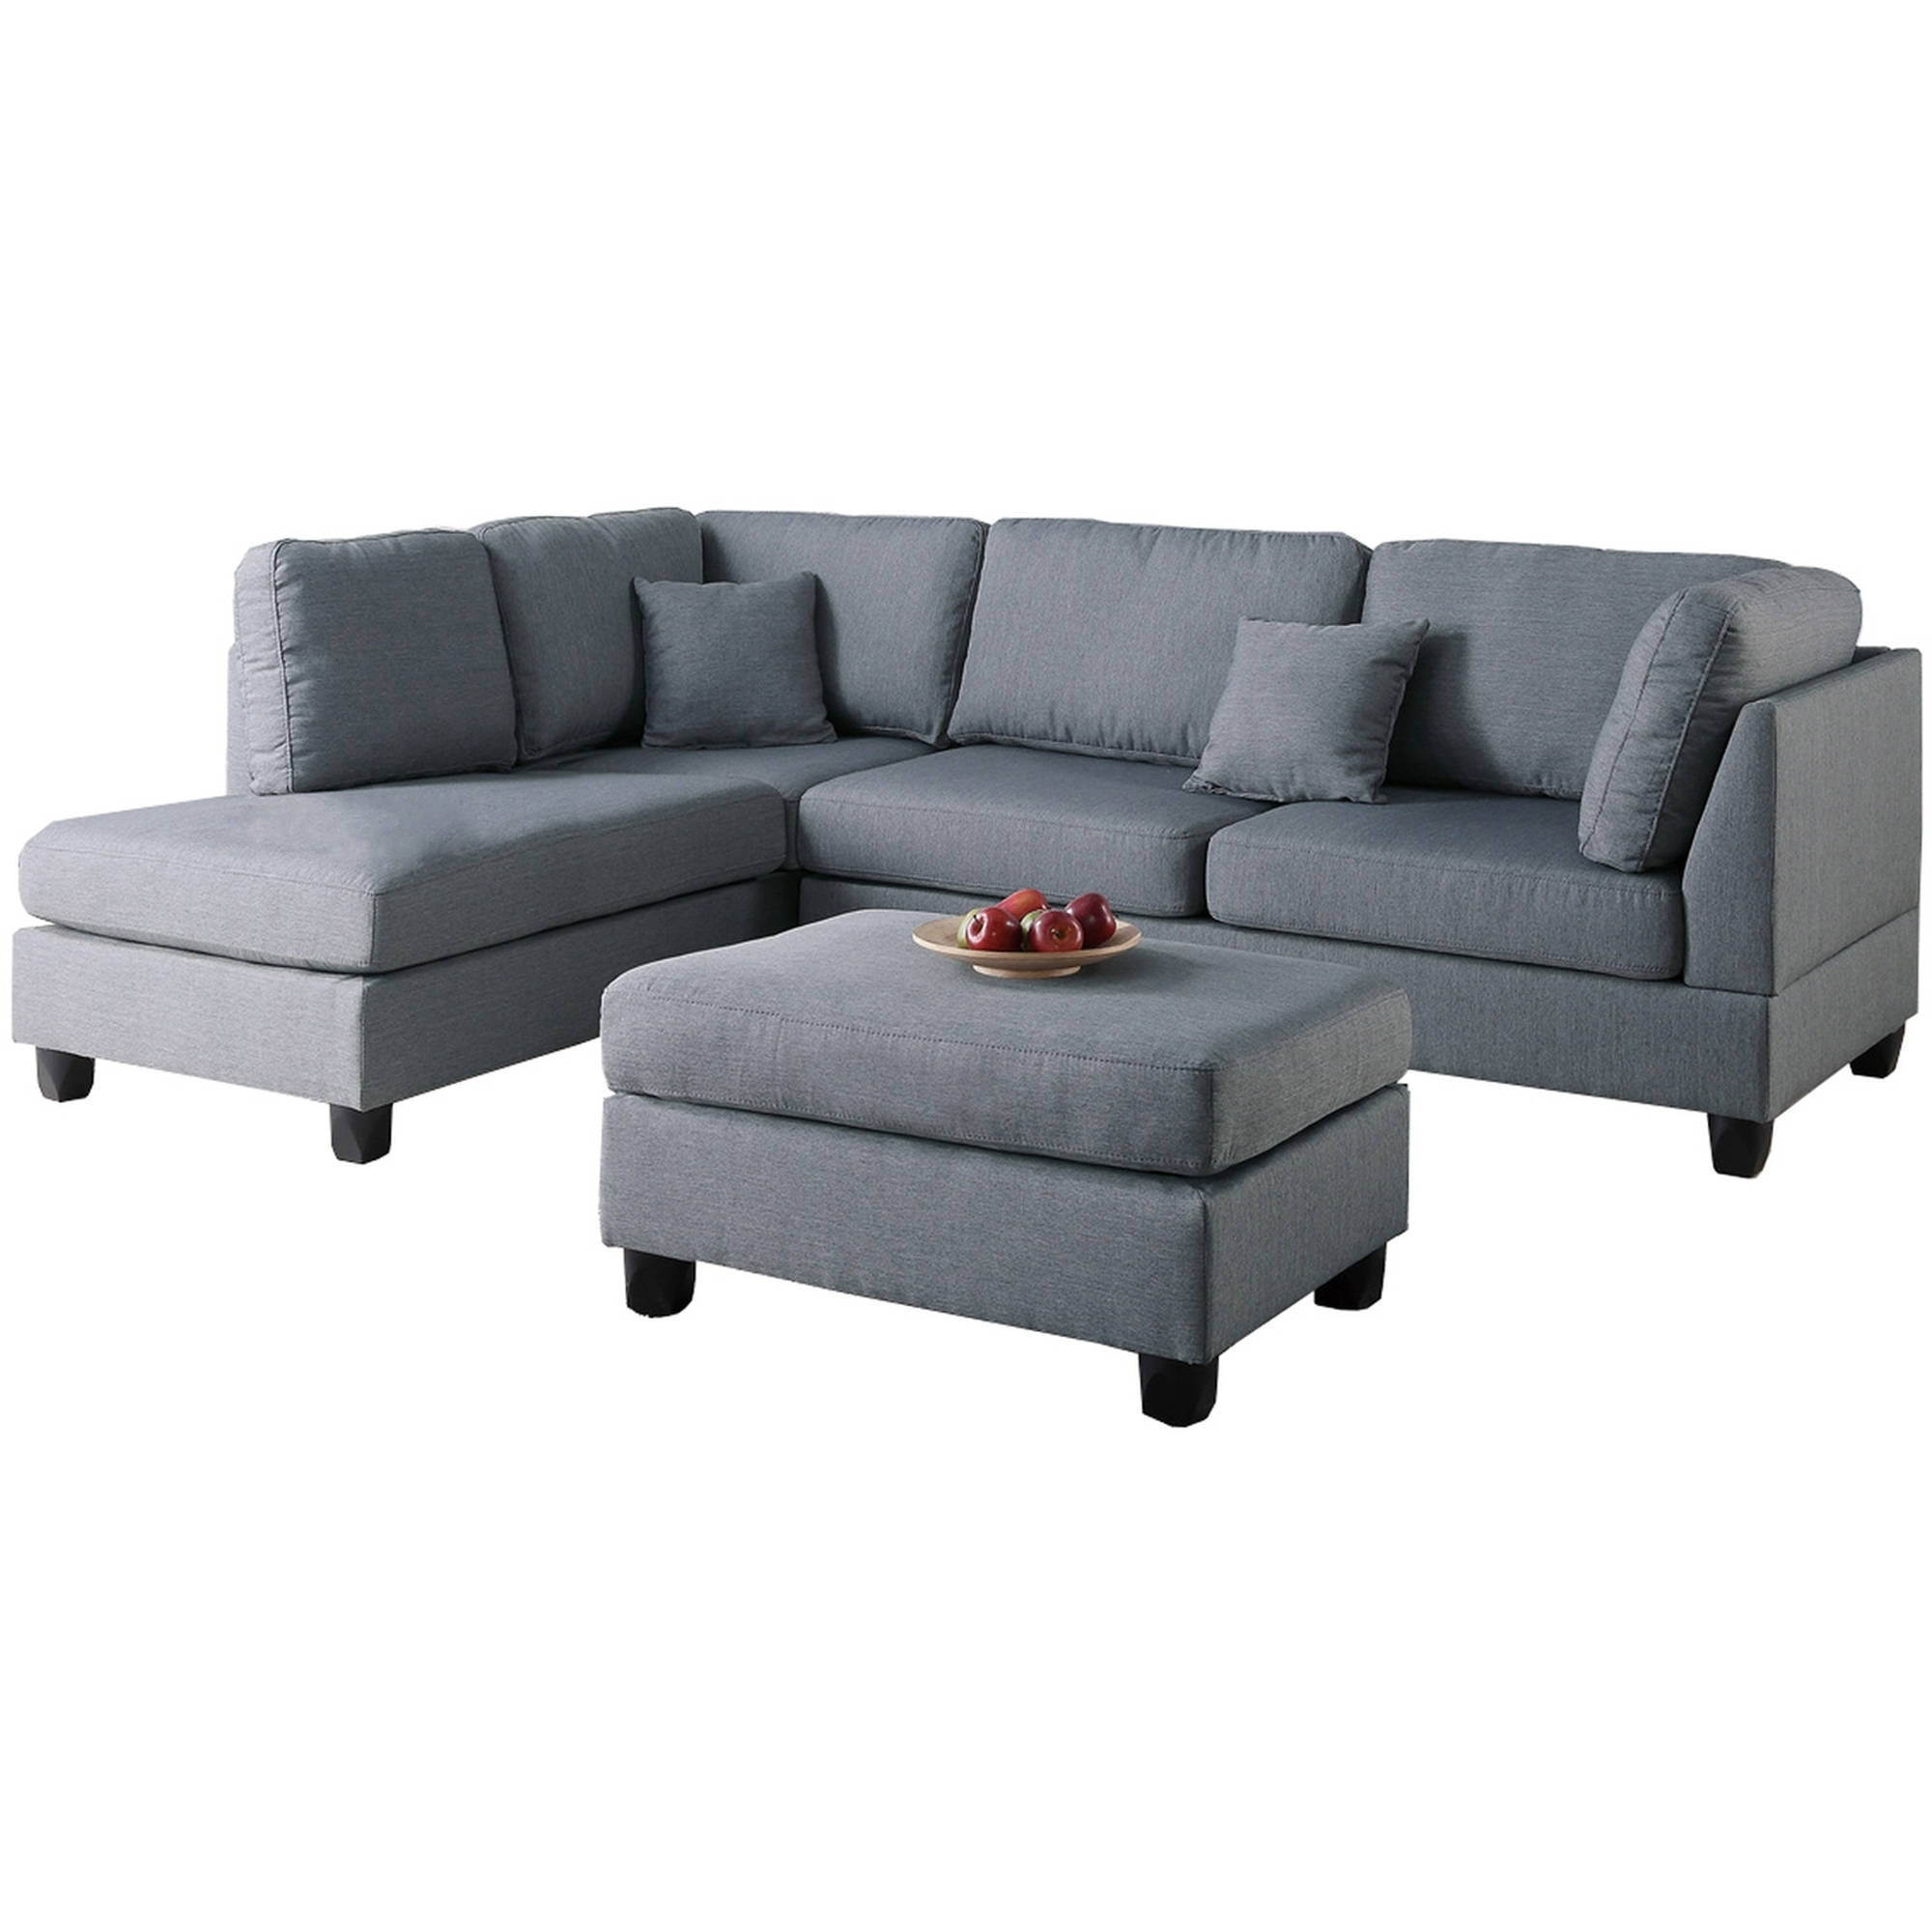 Living Room Furniture With Regard To Newest Sectional Sofas At Walmart (View 4 of 15)